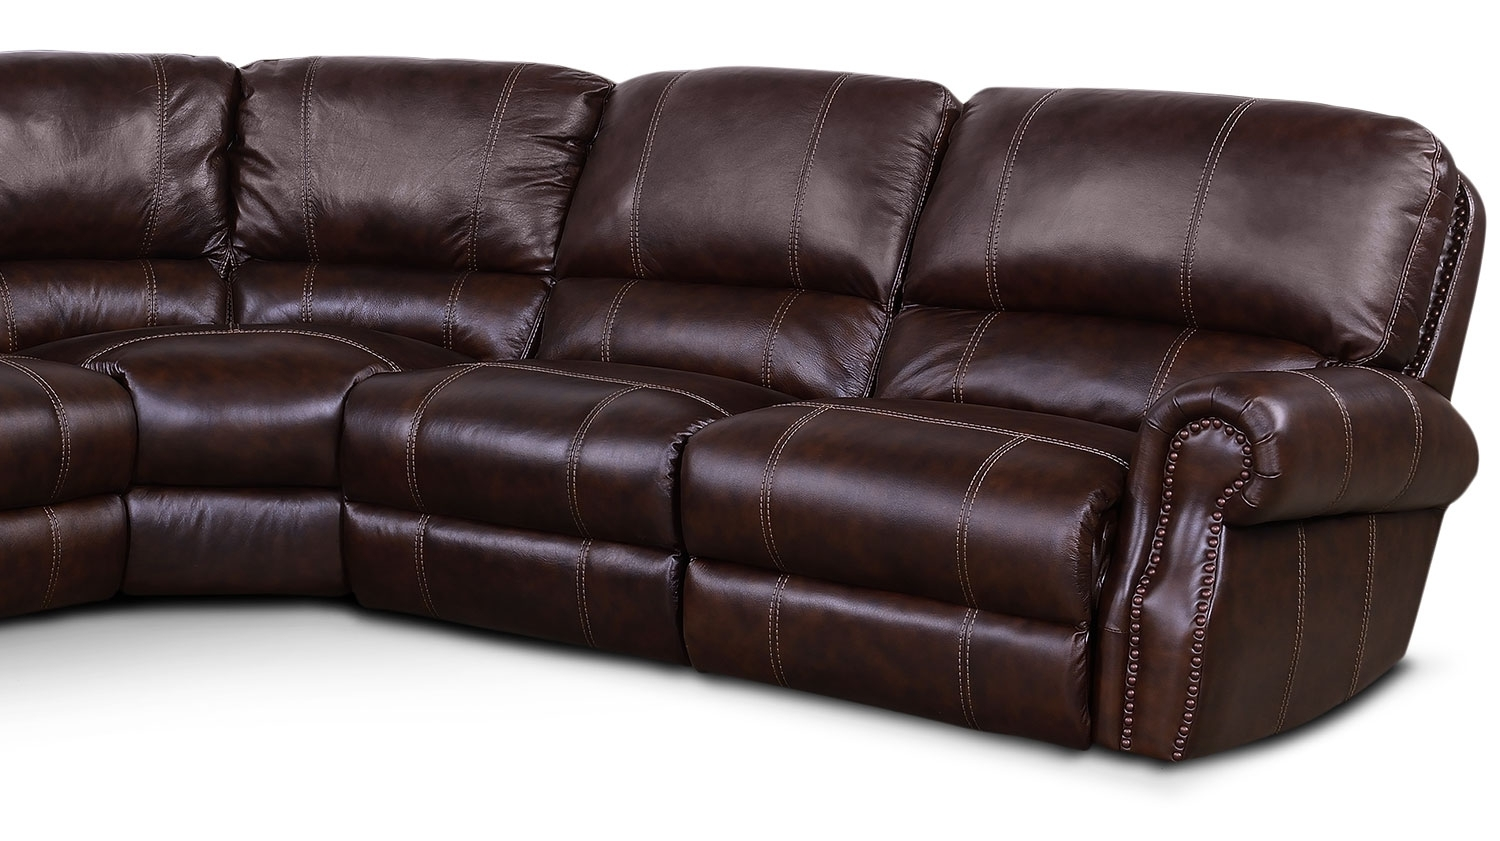 Dartmouth 6 Piece Power Reclining Sectional W/ Left Facing Chaise Pertaining To Norfolk Chocolate 3 Piece Sectionals With Laf Chaise (Image 8 of 25)